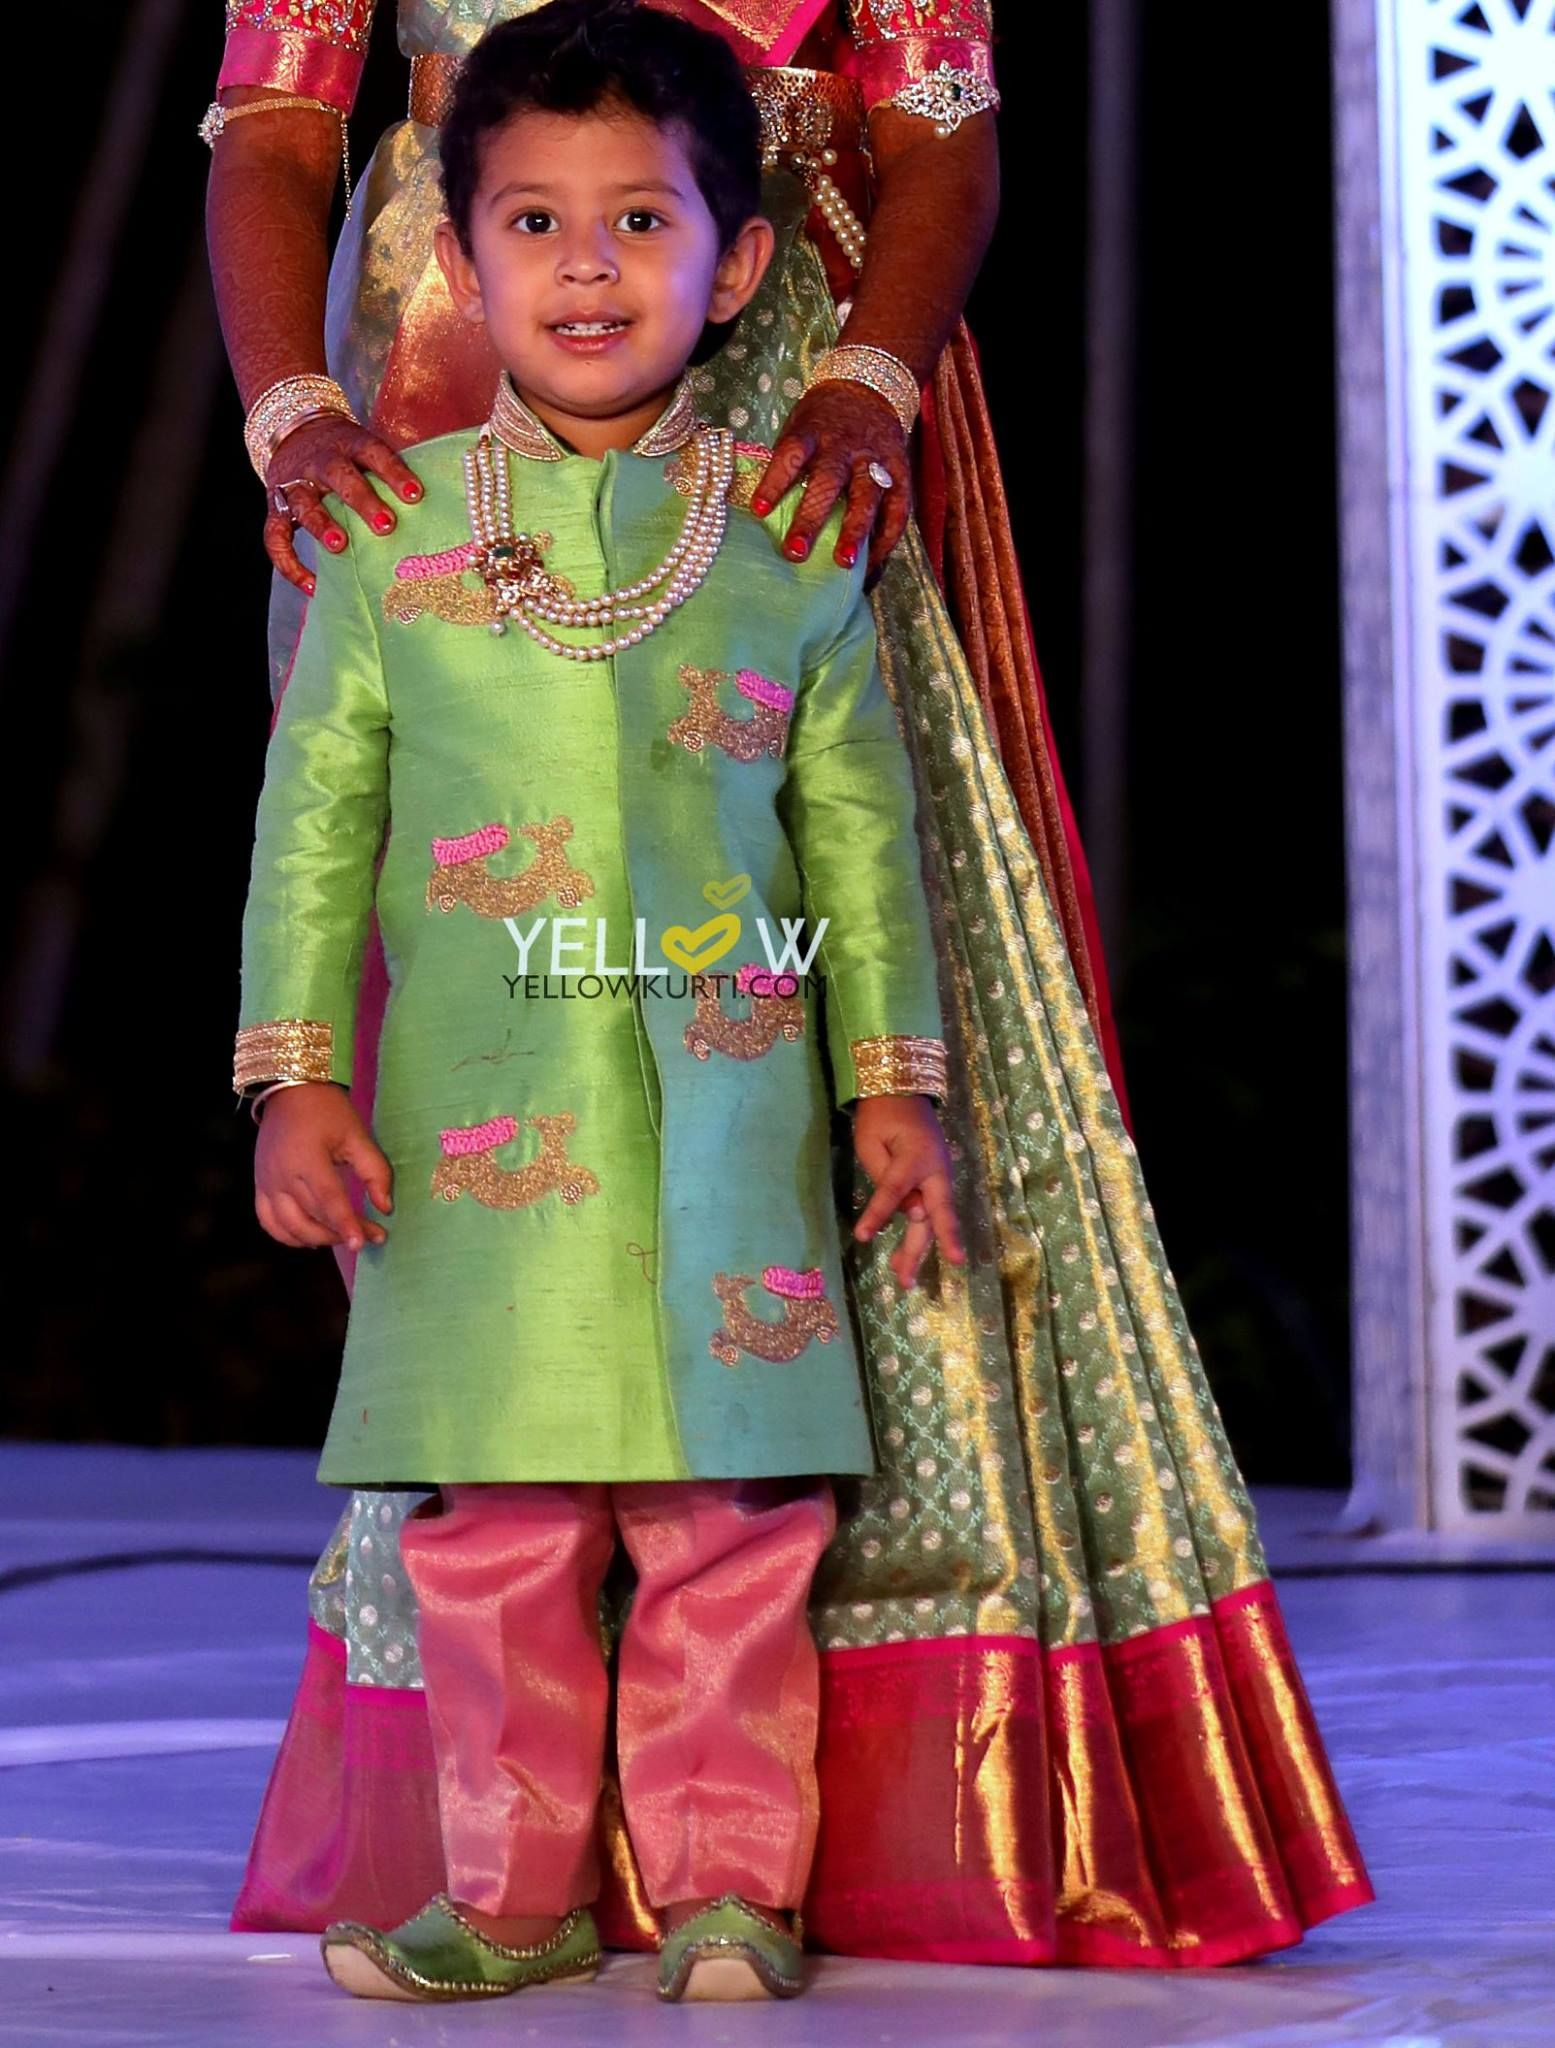 baef4a43ae0 Customised Rawsilk Kurta and dhoti set with embroidered scooters . Doable  for any age group.Kindly write to us at teamyellow yellowkurti.com 27 June  2017